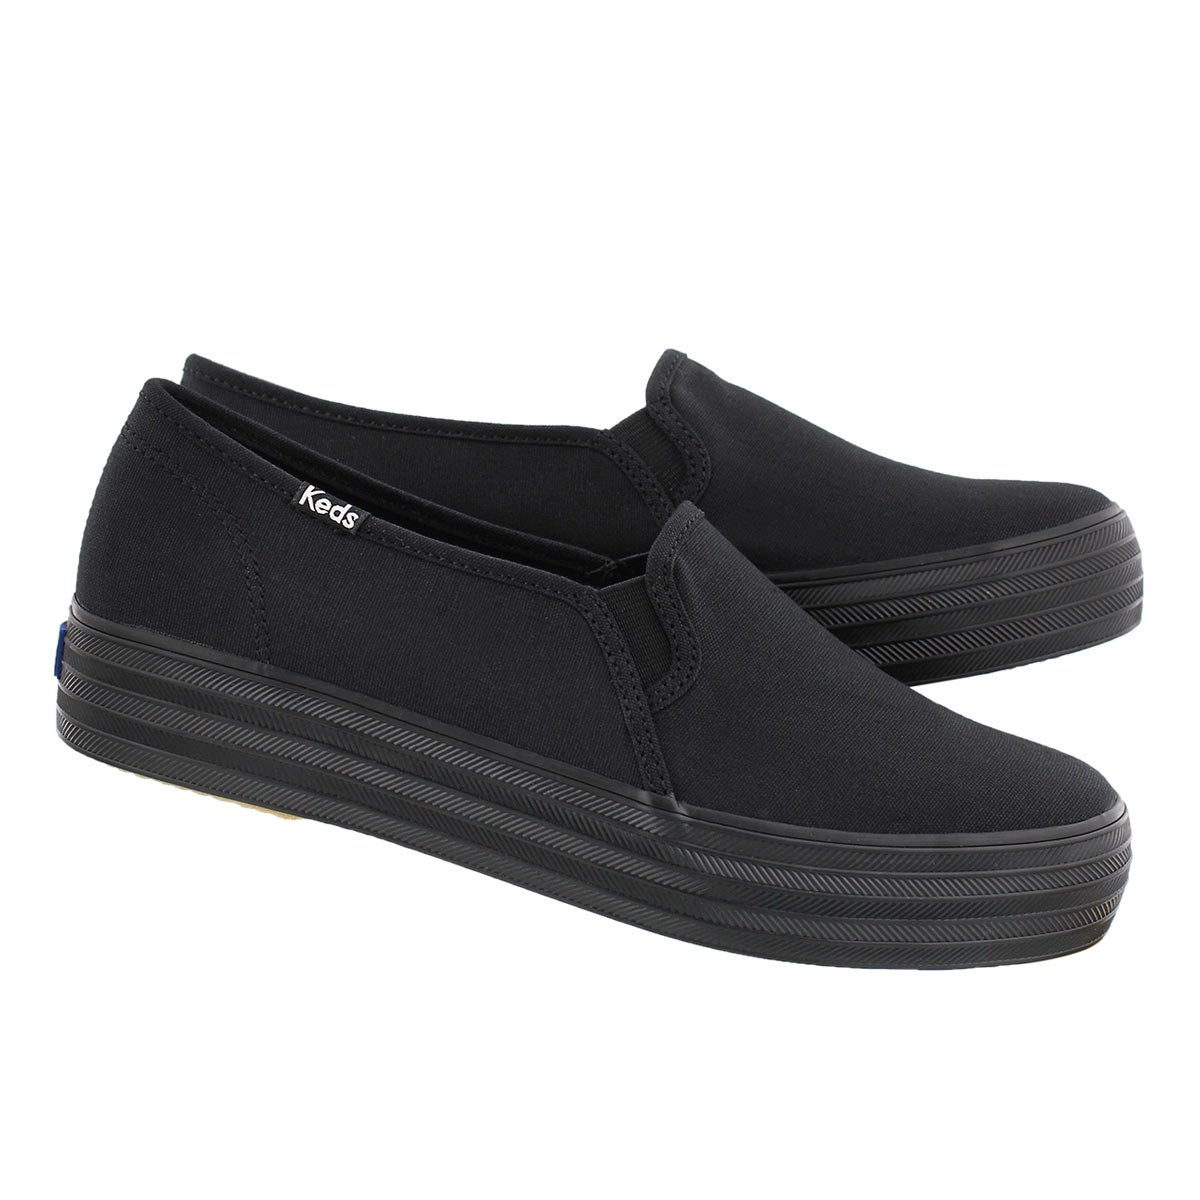 Lds Triple Decker blk/blk slip on